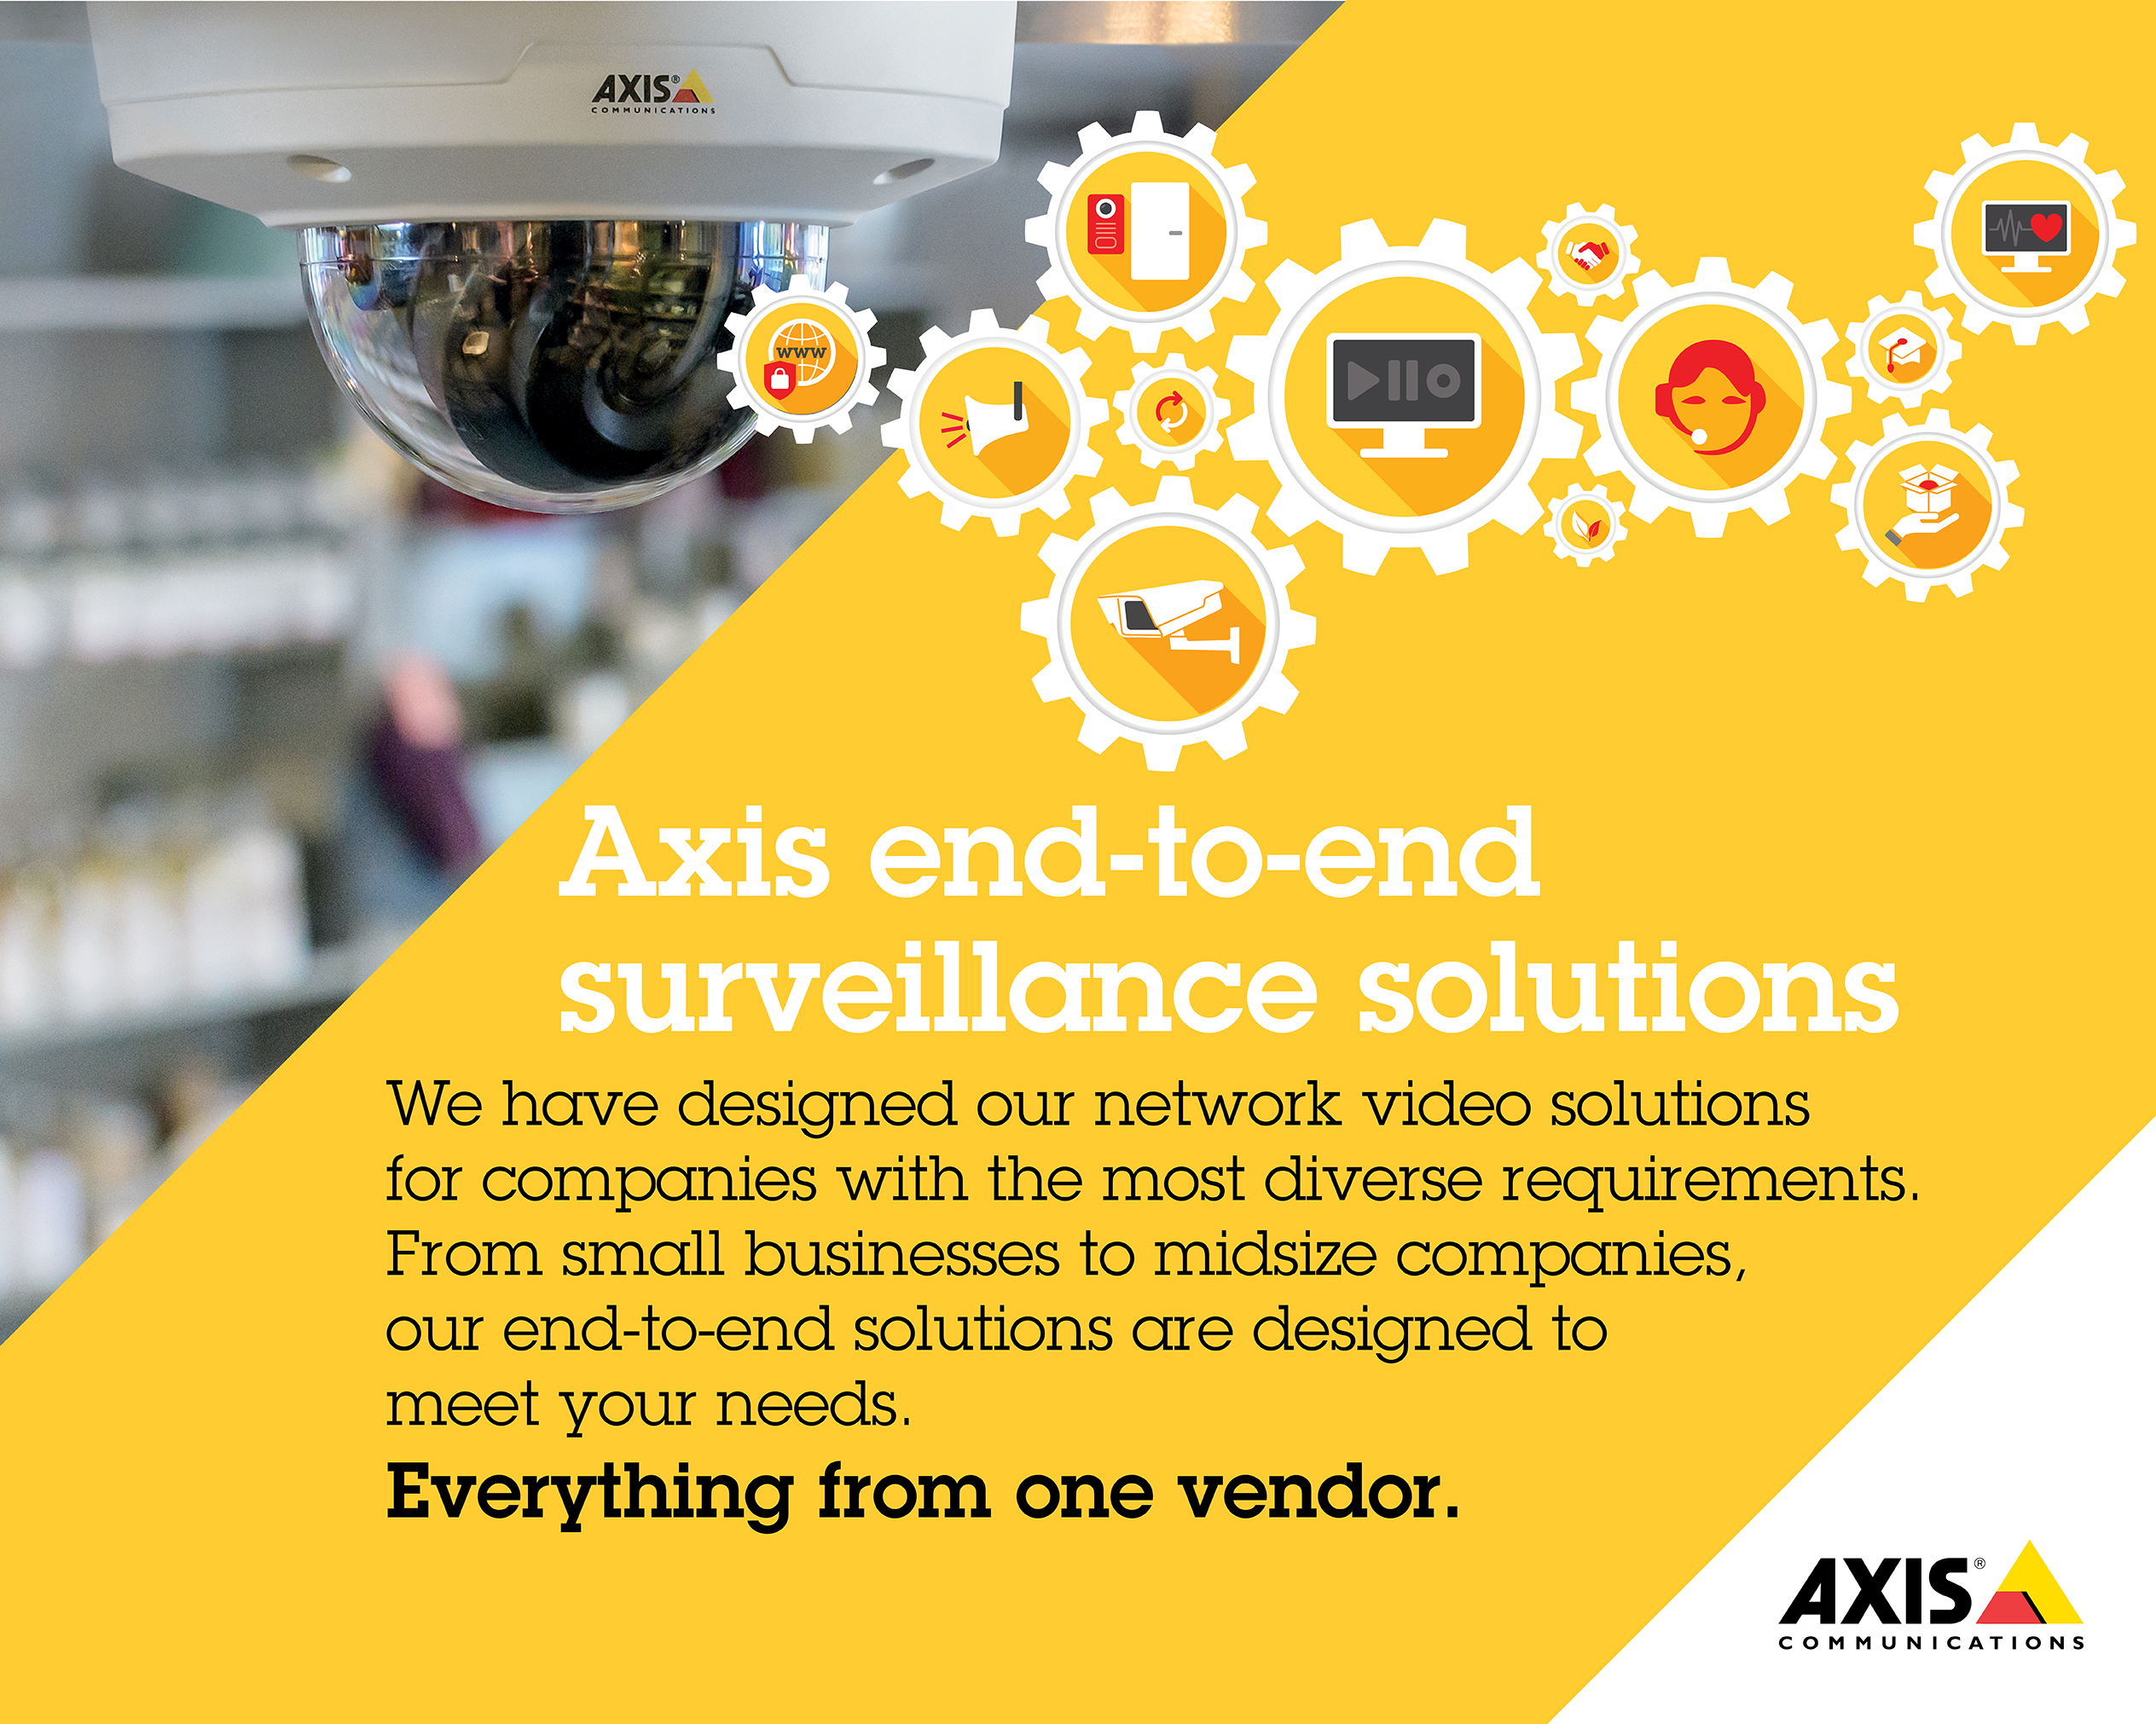 itsa 365: in-store surveillance camera and information on end-to-end surveillance solutions